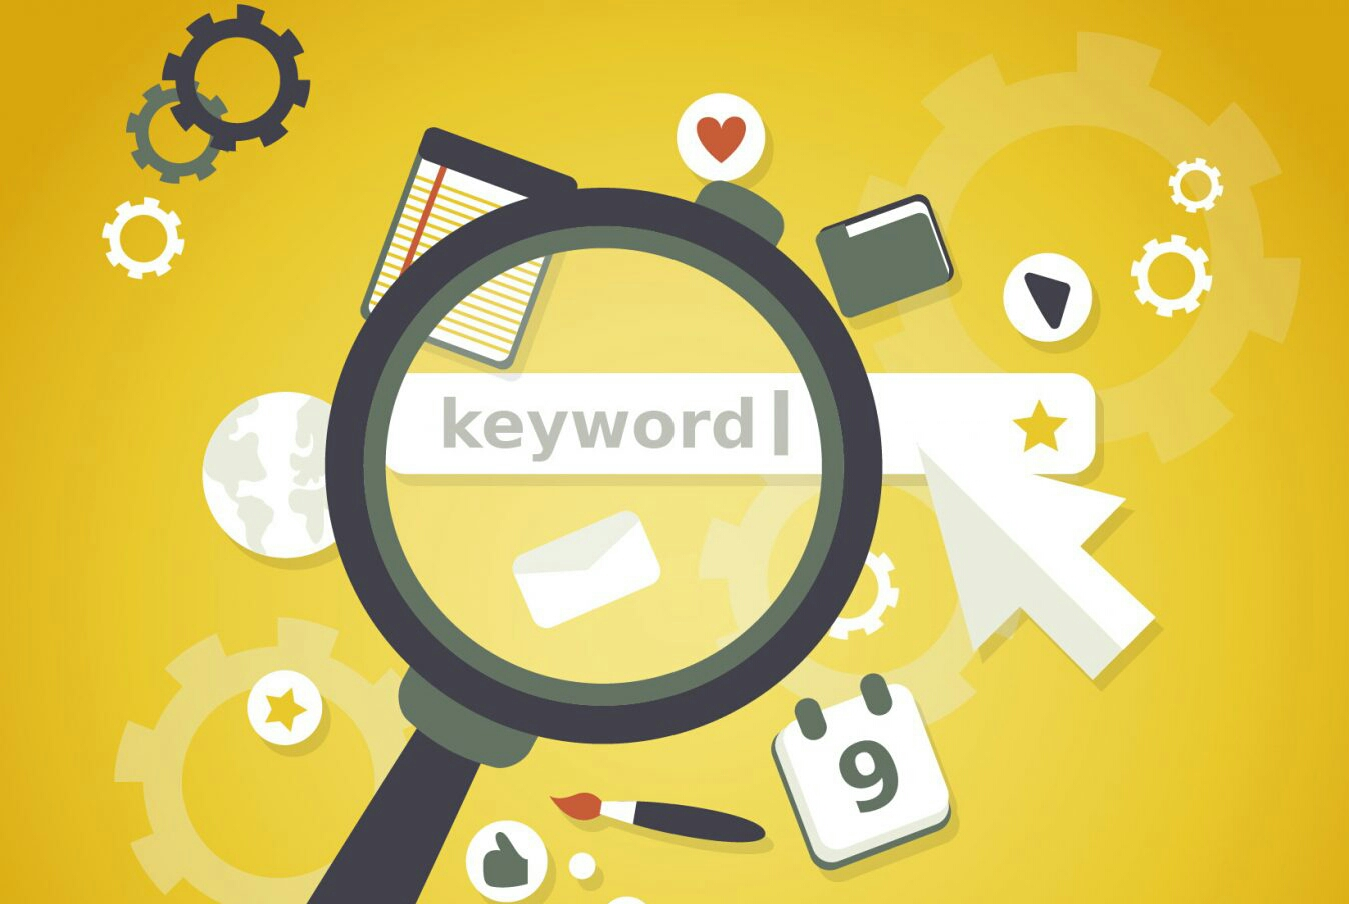 wordze keyword planer